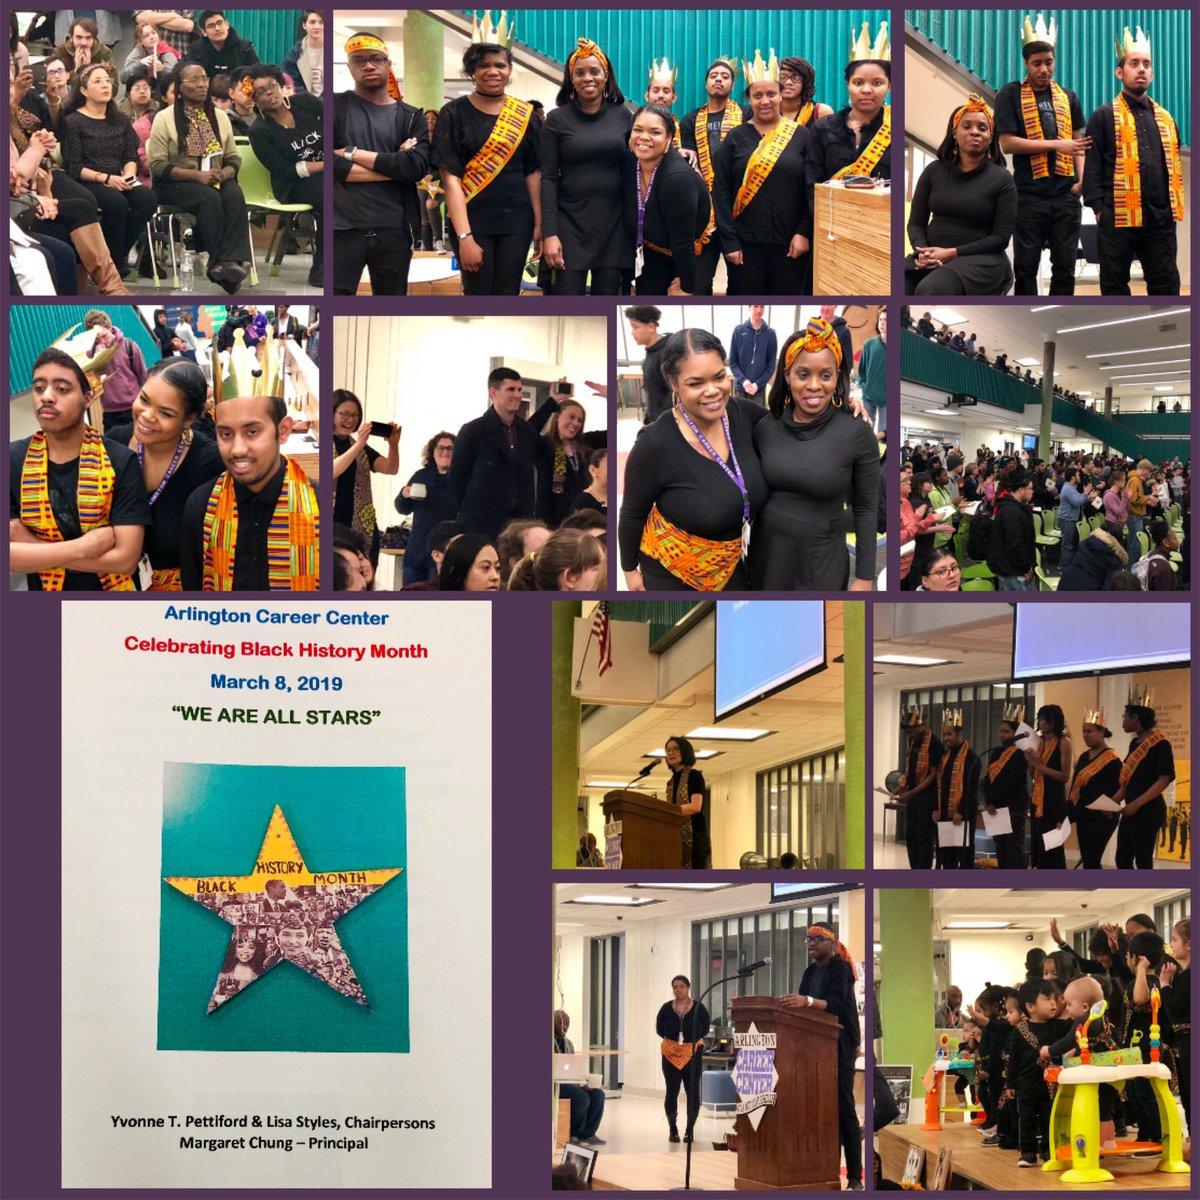 It's never too late to celebrate Black History Month! So proud of our PEP staff &amp; students that participated! <a target='_blank' href='http://search.twitter.com/search?q=WeAreACC'><a target='_blank' href='https://twitter.com/hashtag/WeAreACC?src=hash'>#WeAreACC</a></a> <a target='_blank' href='http://twitter.com/ChefRandi14_ACC'>@ChefRandi14_ACC</a> <a target='_blank' href='http://twitter.com/Margaretchungcc'>@Margaretchungcc</a> <a target='_blank' href='http://twitter.com/MsBakerACC'>@MsBakerACC</a> <a target='_blank' href='http://twitter.com/APHealeyACC'>@APHealeyACC</a> <a target='_blank' href='http://twitter.com/ArlingtonSEPTA'>@ArlingtonSEPTA</a> <a target='_blank' href='http://twitter.com/AccCounseling'>@AccCounseling</a> <a target='_blank' href='http://twitter.com/APSCareerCenter'>@APSCareerCenter</a> <a target='_blank' href='http://twitter.com/AcadAcademy'>@AcadAcademy</a> <a target='_blank' href='http://twitter.com/ACCHilt_Inst'>@ACCHilt_Inst</a> <a target='_blank' href='http://twitter.com/arlingtontechcc'>@arlingtontechcc</a> <a target='_blank' href='http://twitter.com/APS_OEE'>@APS_OEE</a> <a target='_blank' href='https://t.co/o1fSMiytHD'>https://t.co/o1fSMiytHD</a>